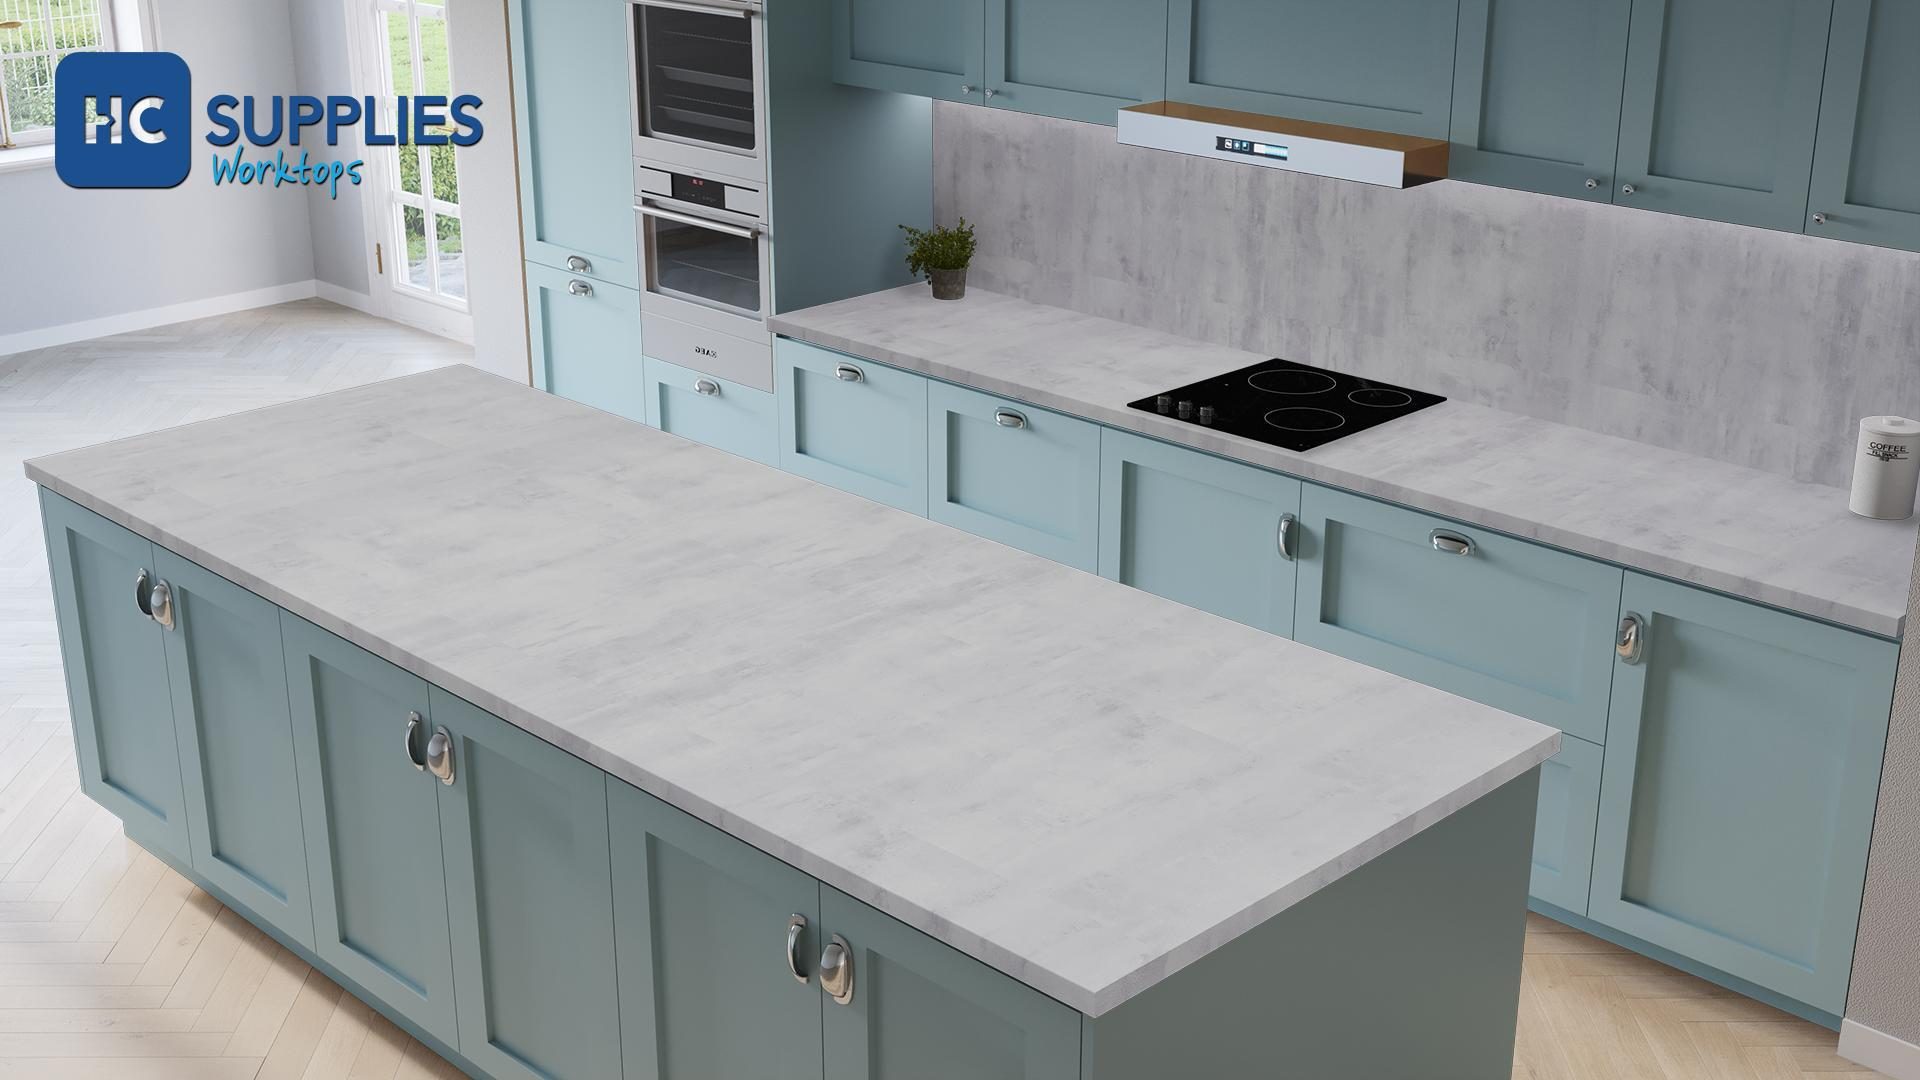 Artis Portland Granite  Breakfast Bar Product Image